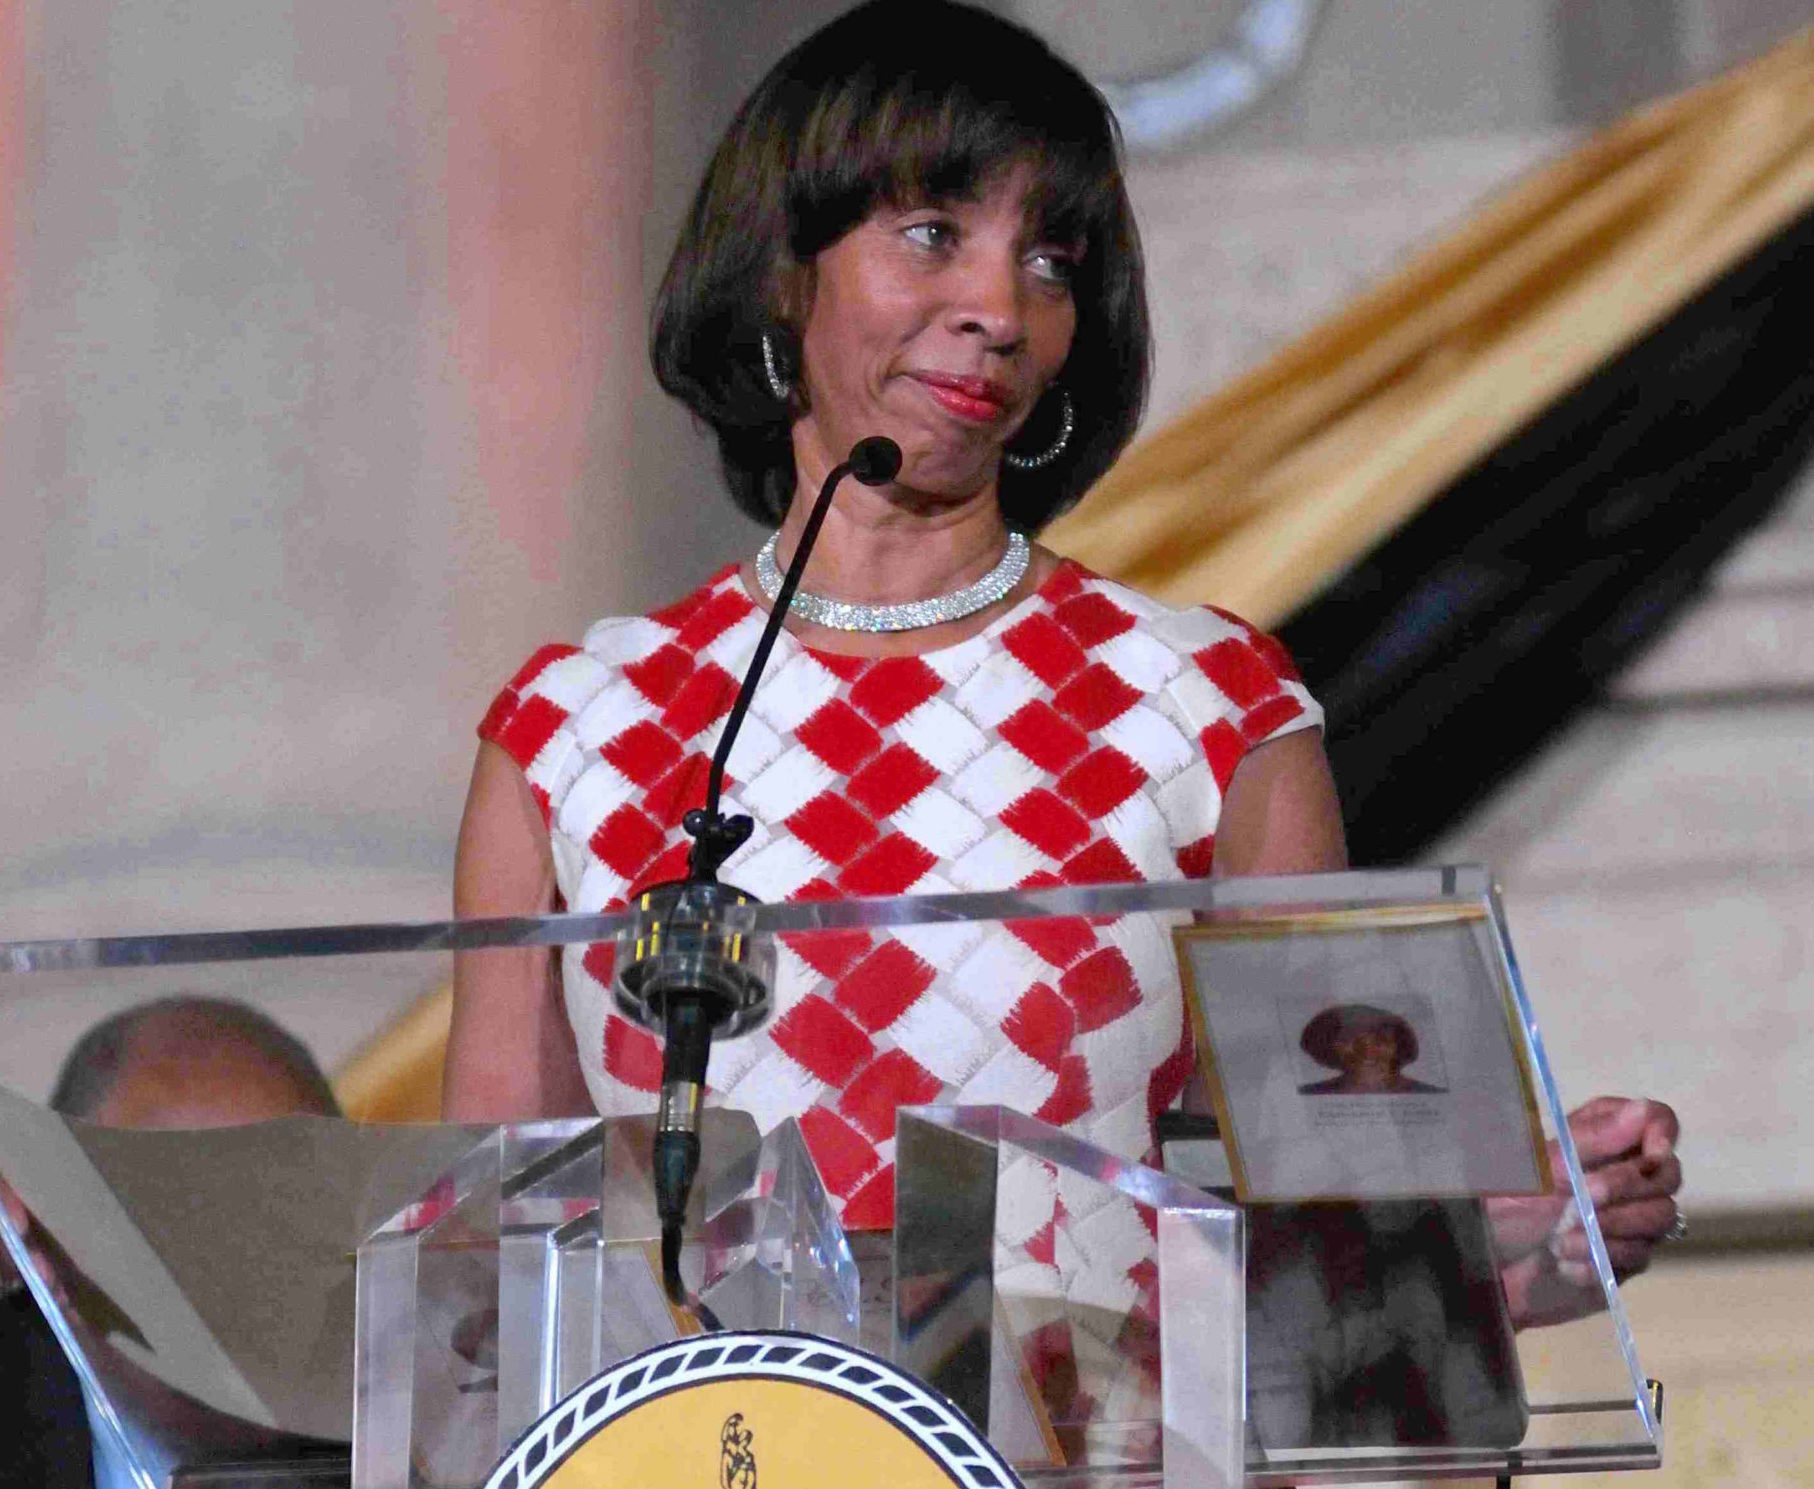 Catherine Pugh gets 3 years for fraud, conspiracy in 'Healthy Holly' book scandal